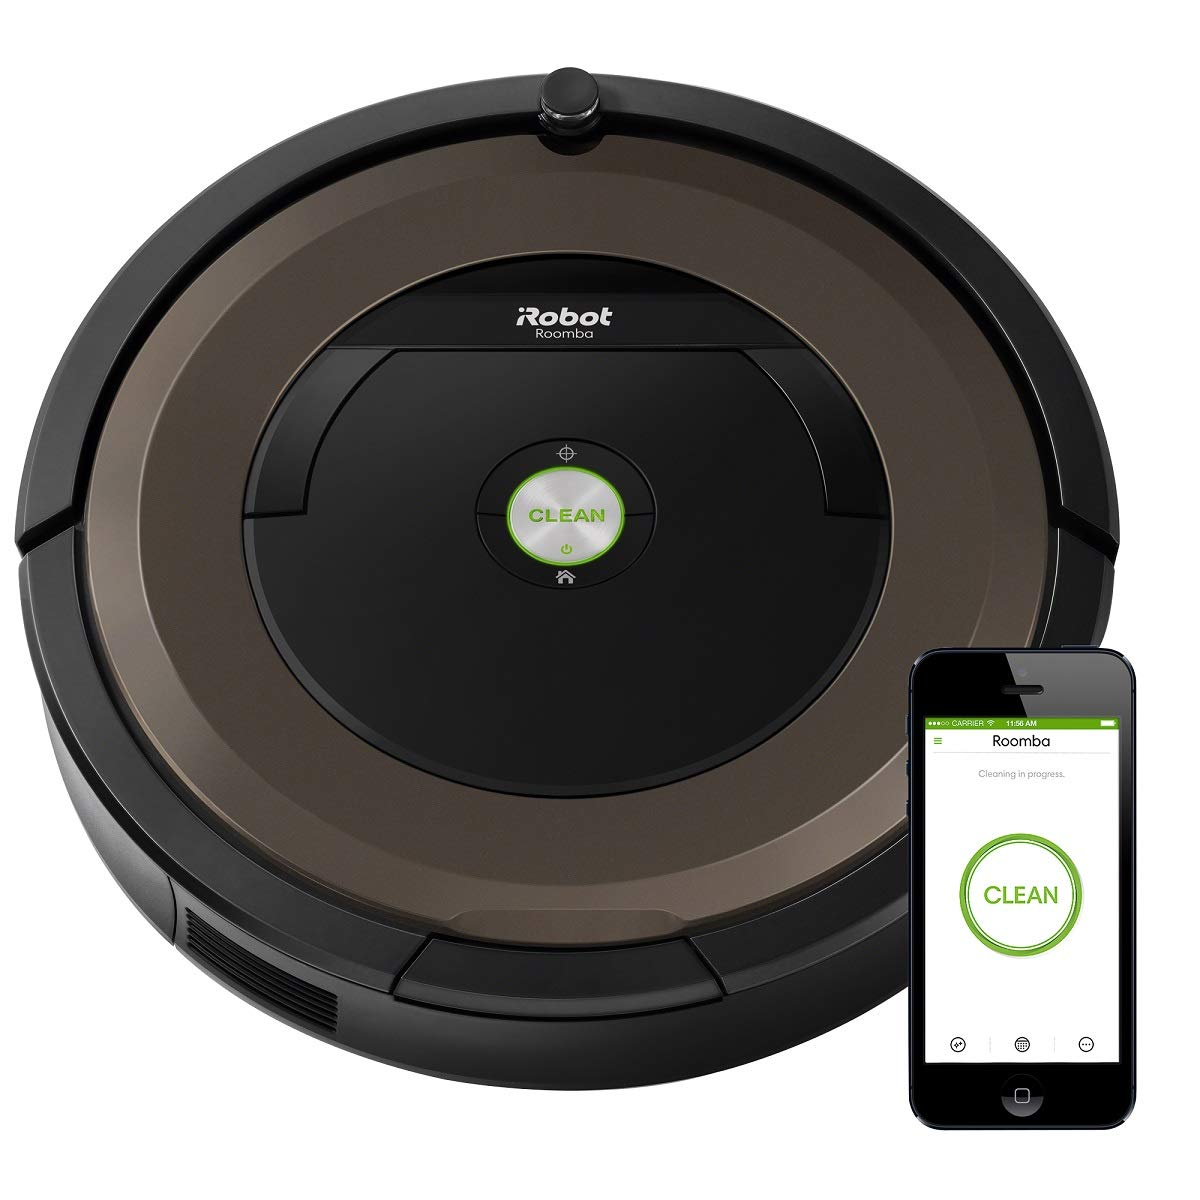 iRobot Roomba 890 Robot Vacuum- Wi-Fi Connected, Works with Alexa, Ideal for Pet Hair, Carpets, Hard Floors by iRobot